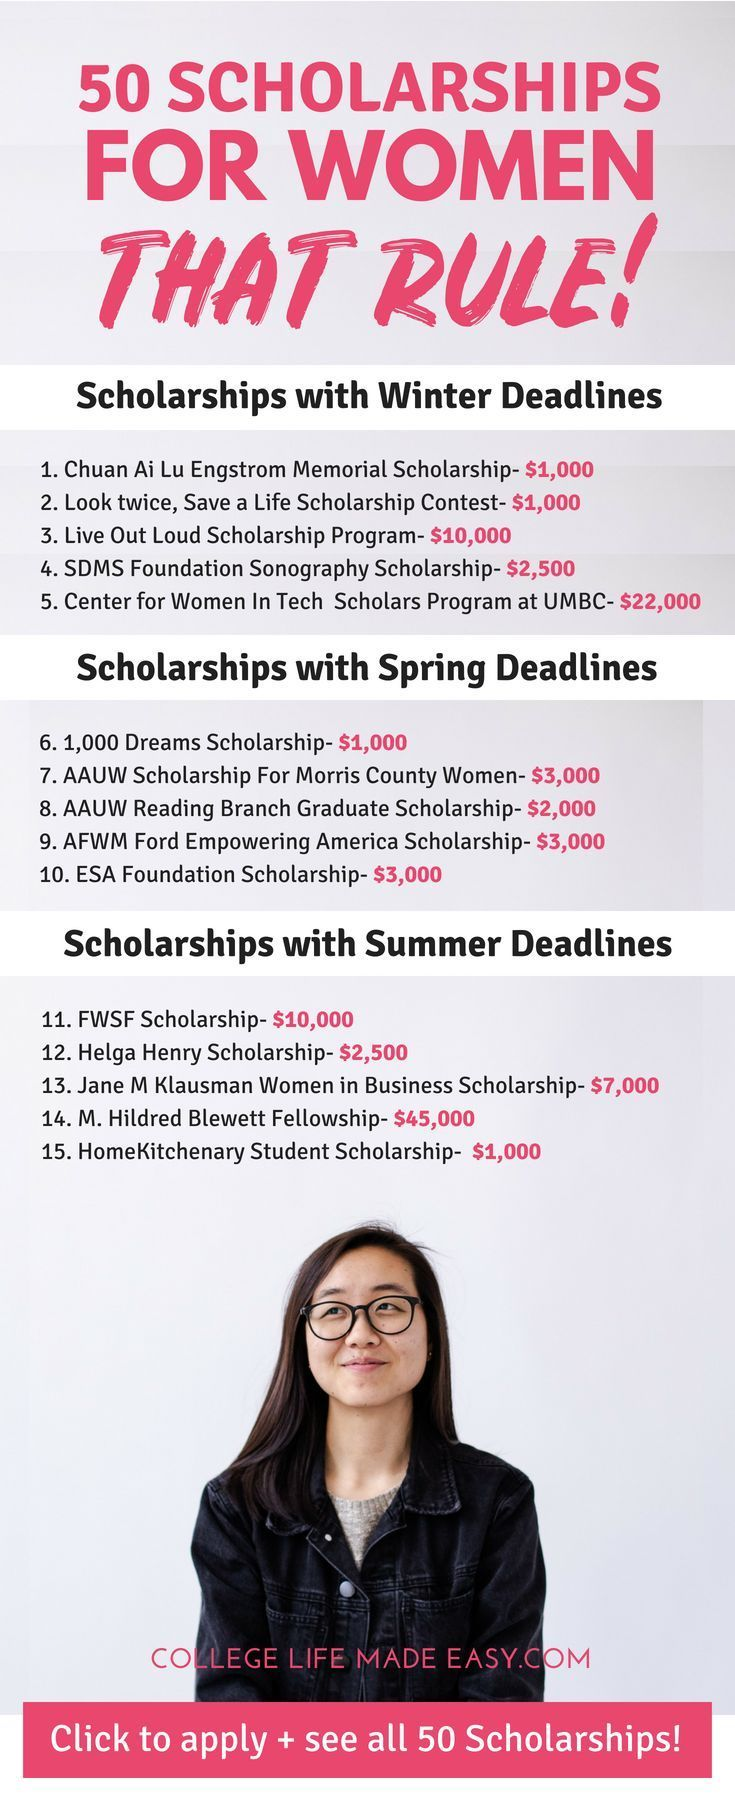 Grants For College >> Scholarships For Women Complete List For 2020 Grants For